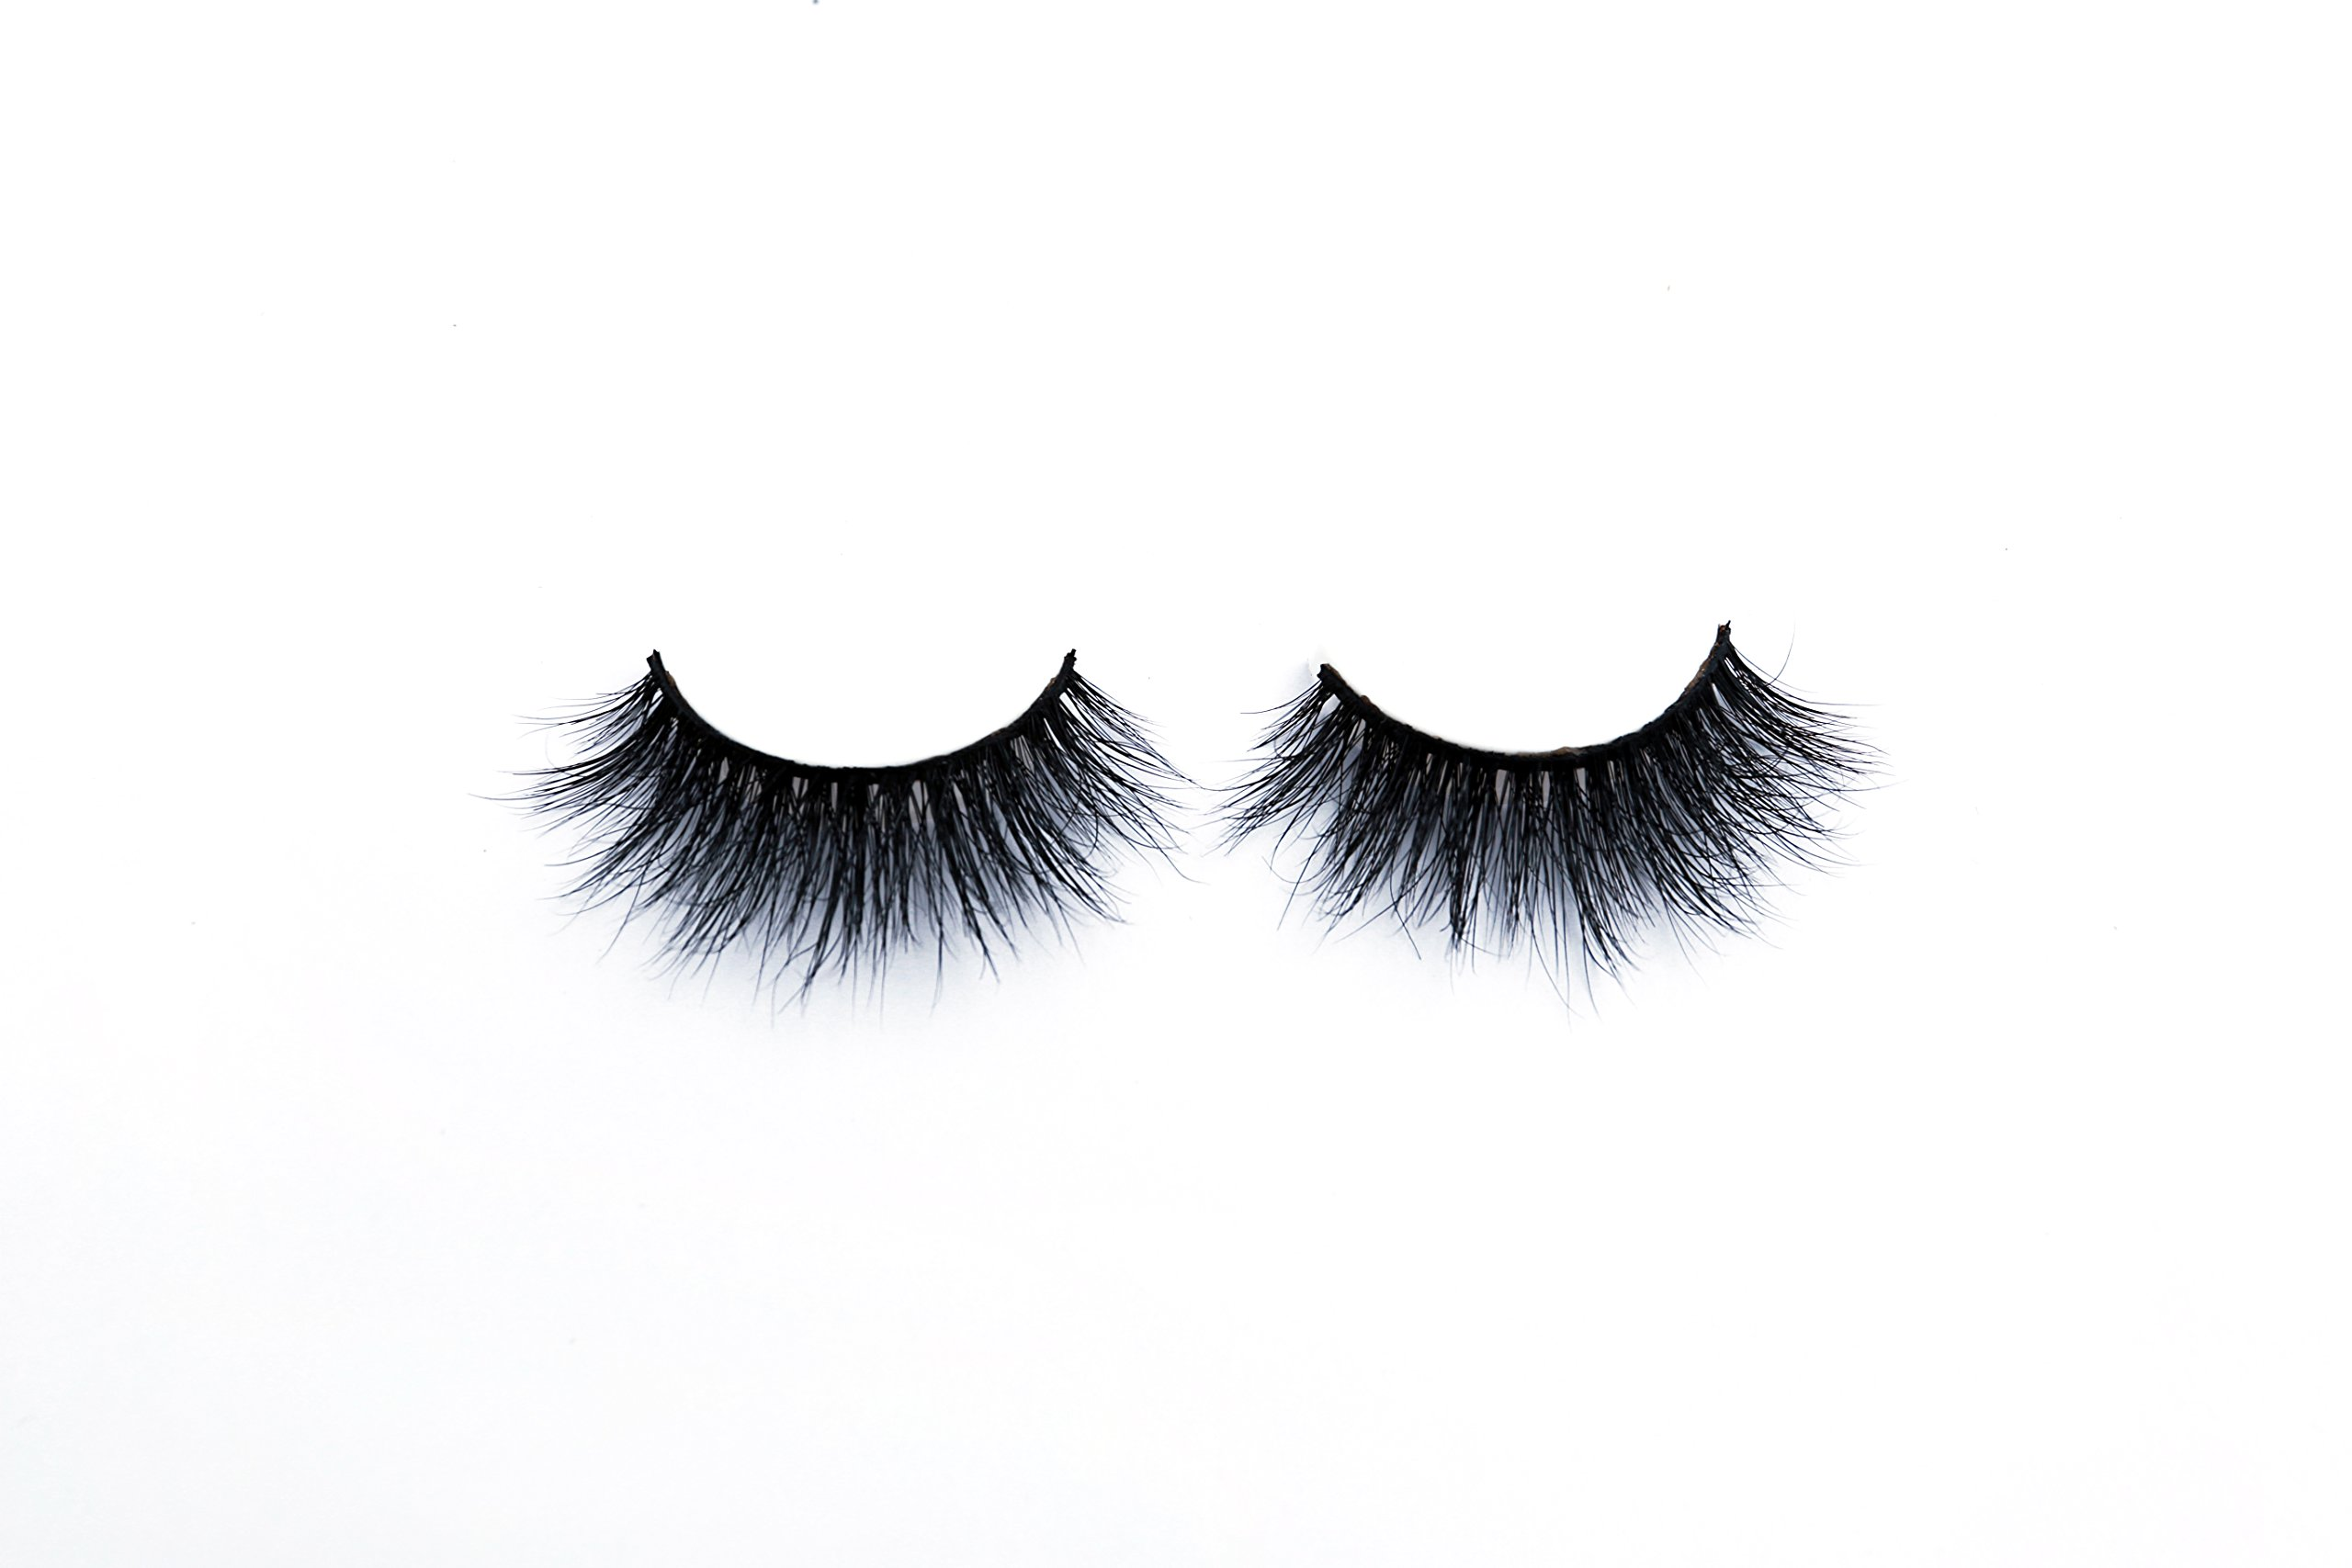 ad507ac1433 Amazon.com : 3d Mink Lashes - Faux Fur Eyelash Extensions - 100% Cruelty  Free - Hand Made for Long Lasting Results - Easy to Apply and Comfortable  False ...